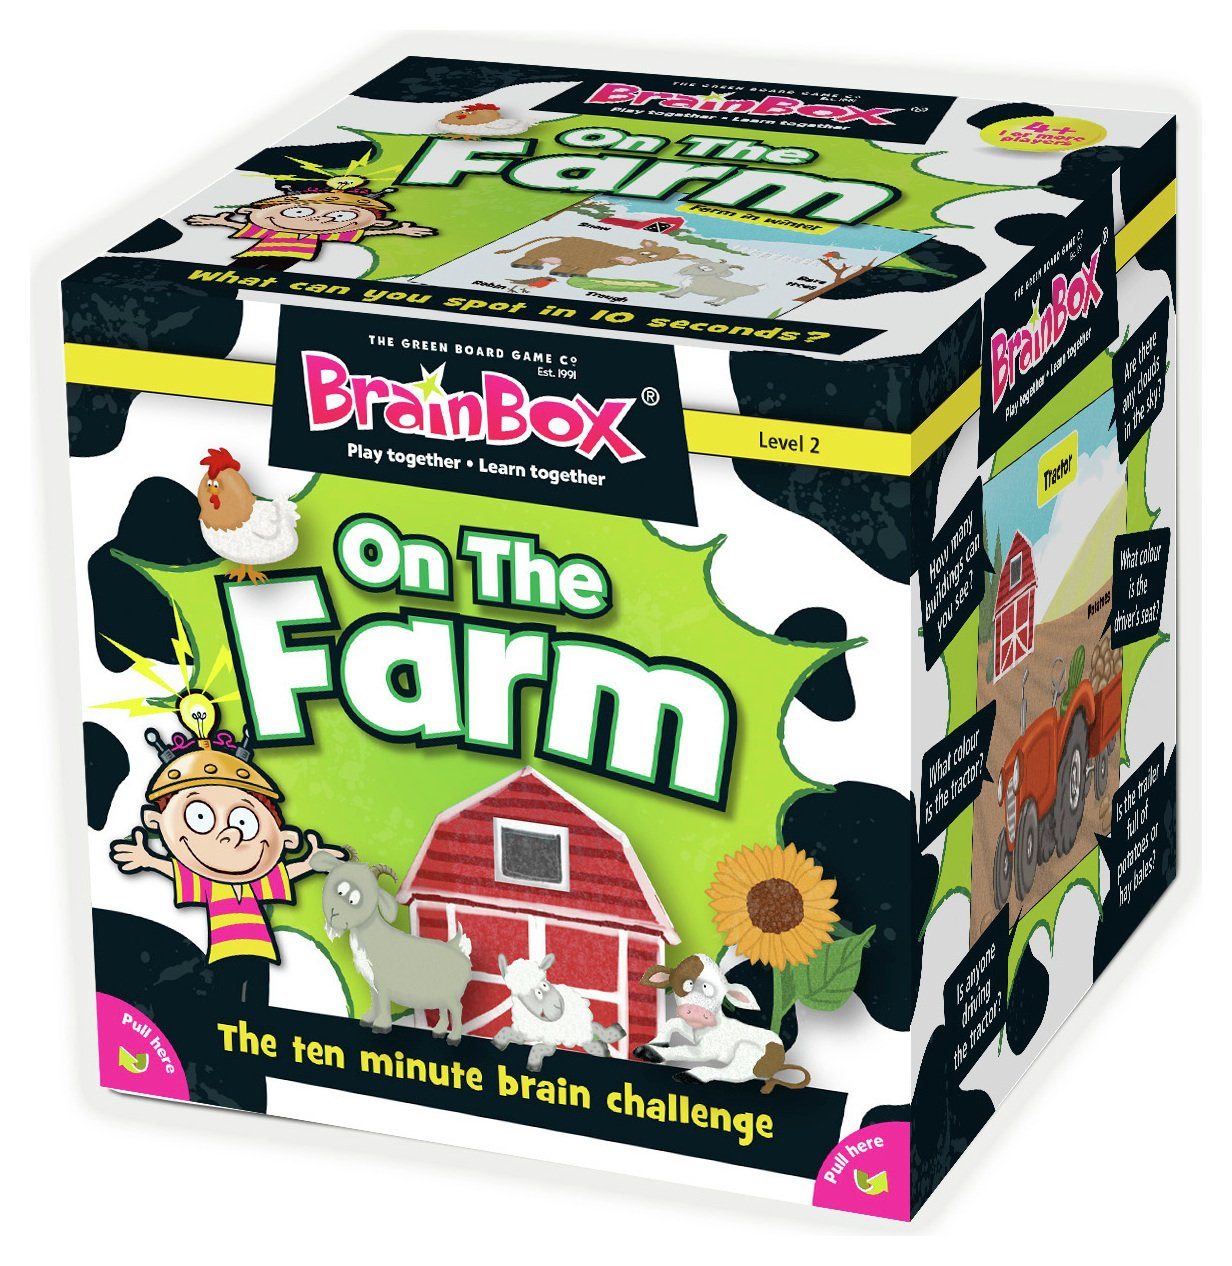 Image of Brainbox On the Farm Game.